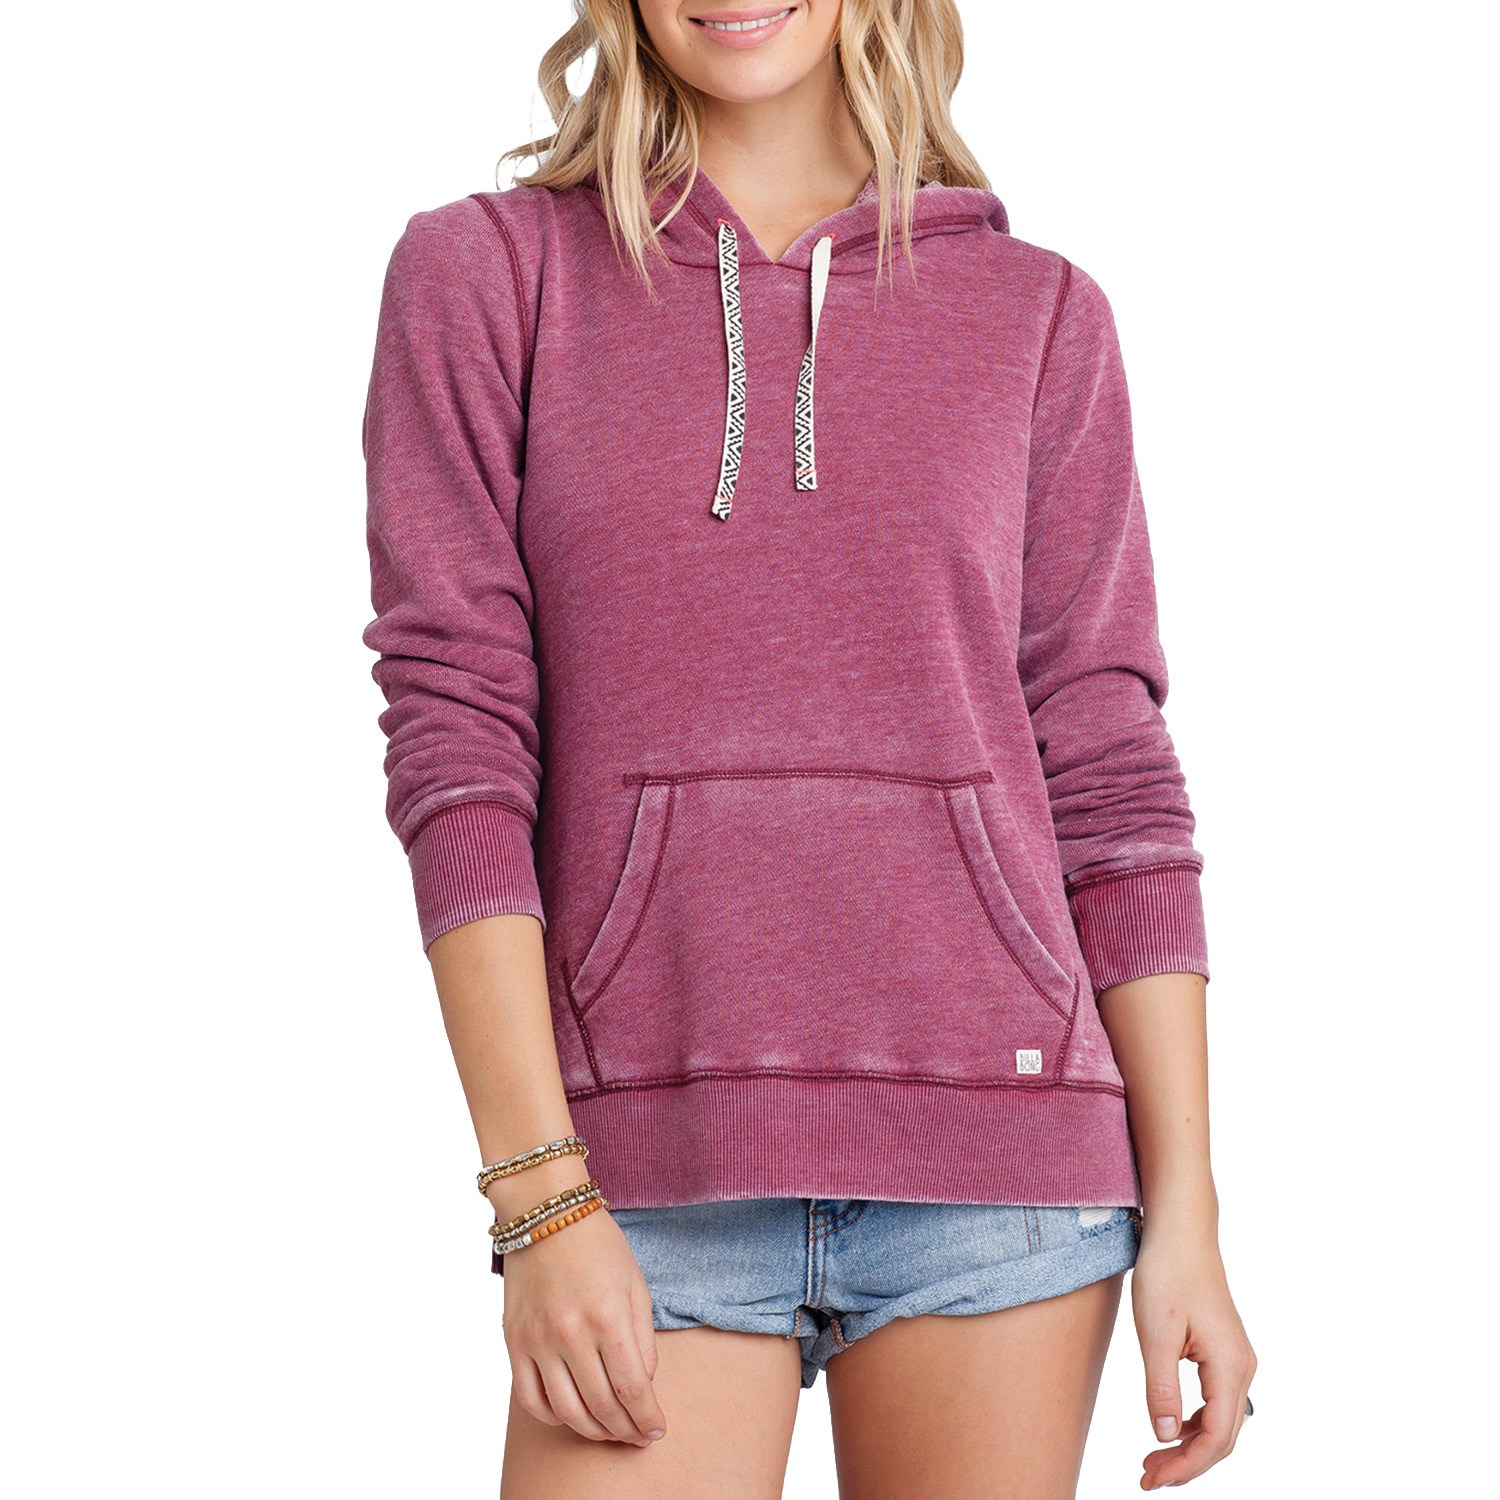 Billabong Run Down Pullover Hoodie - Women's | evo outlet